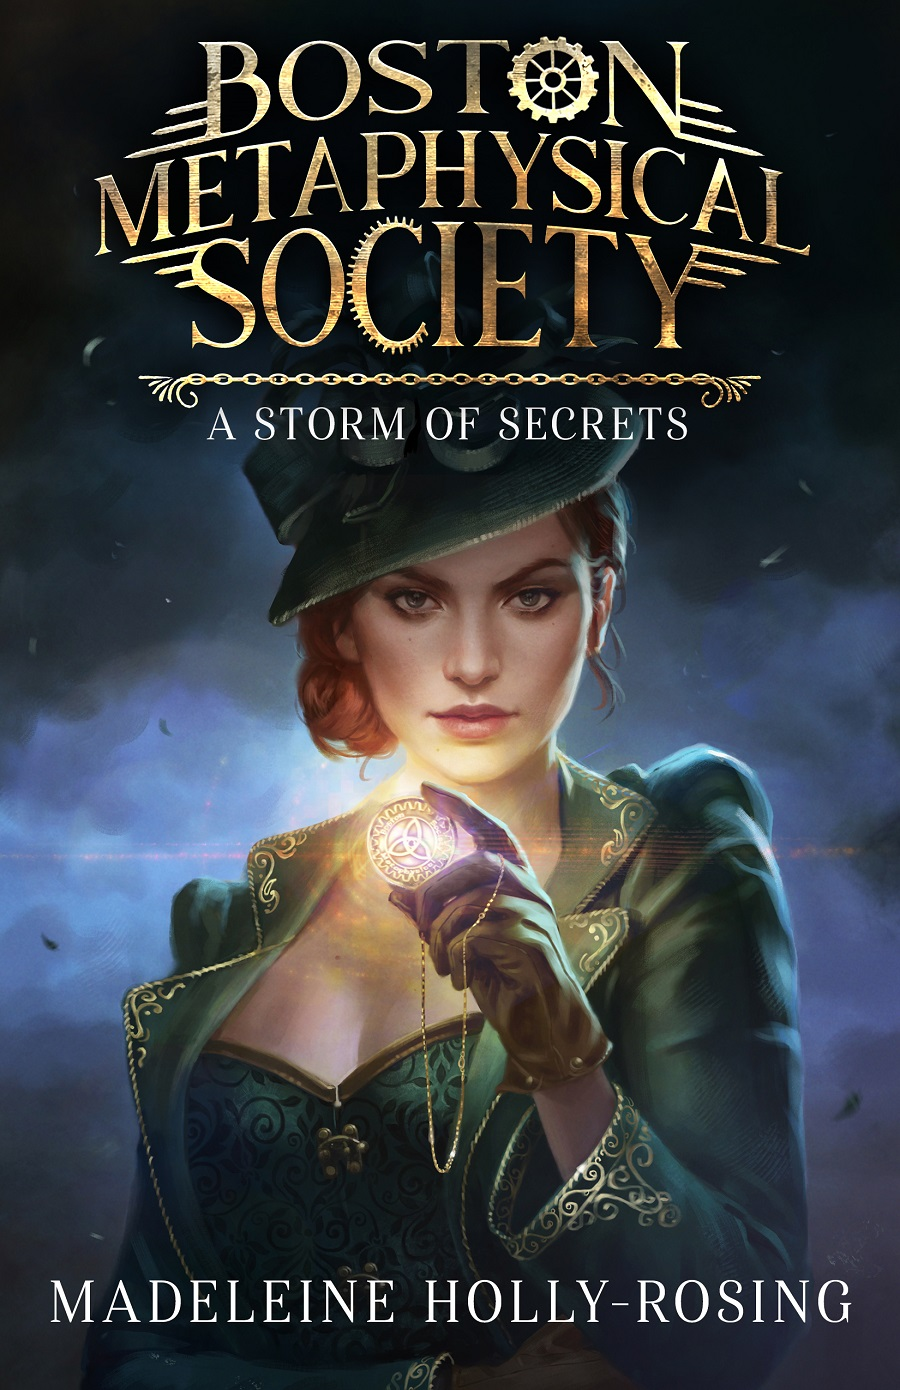 Boston Metaphysical Society: A Storm of Secrets Book Cover